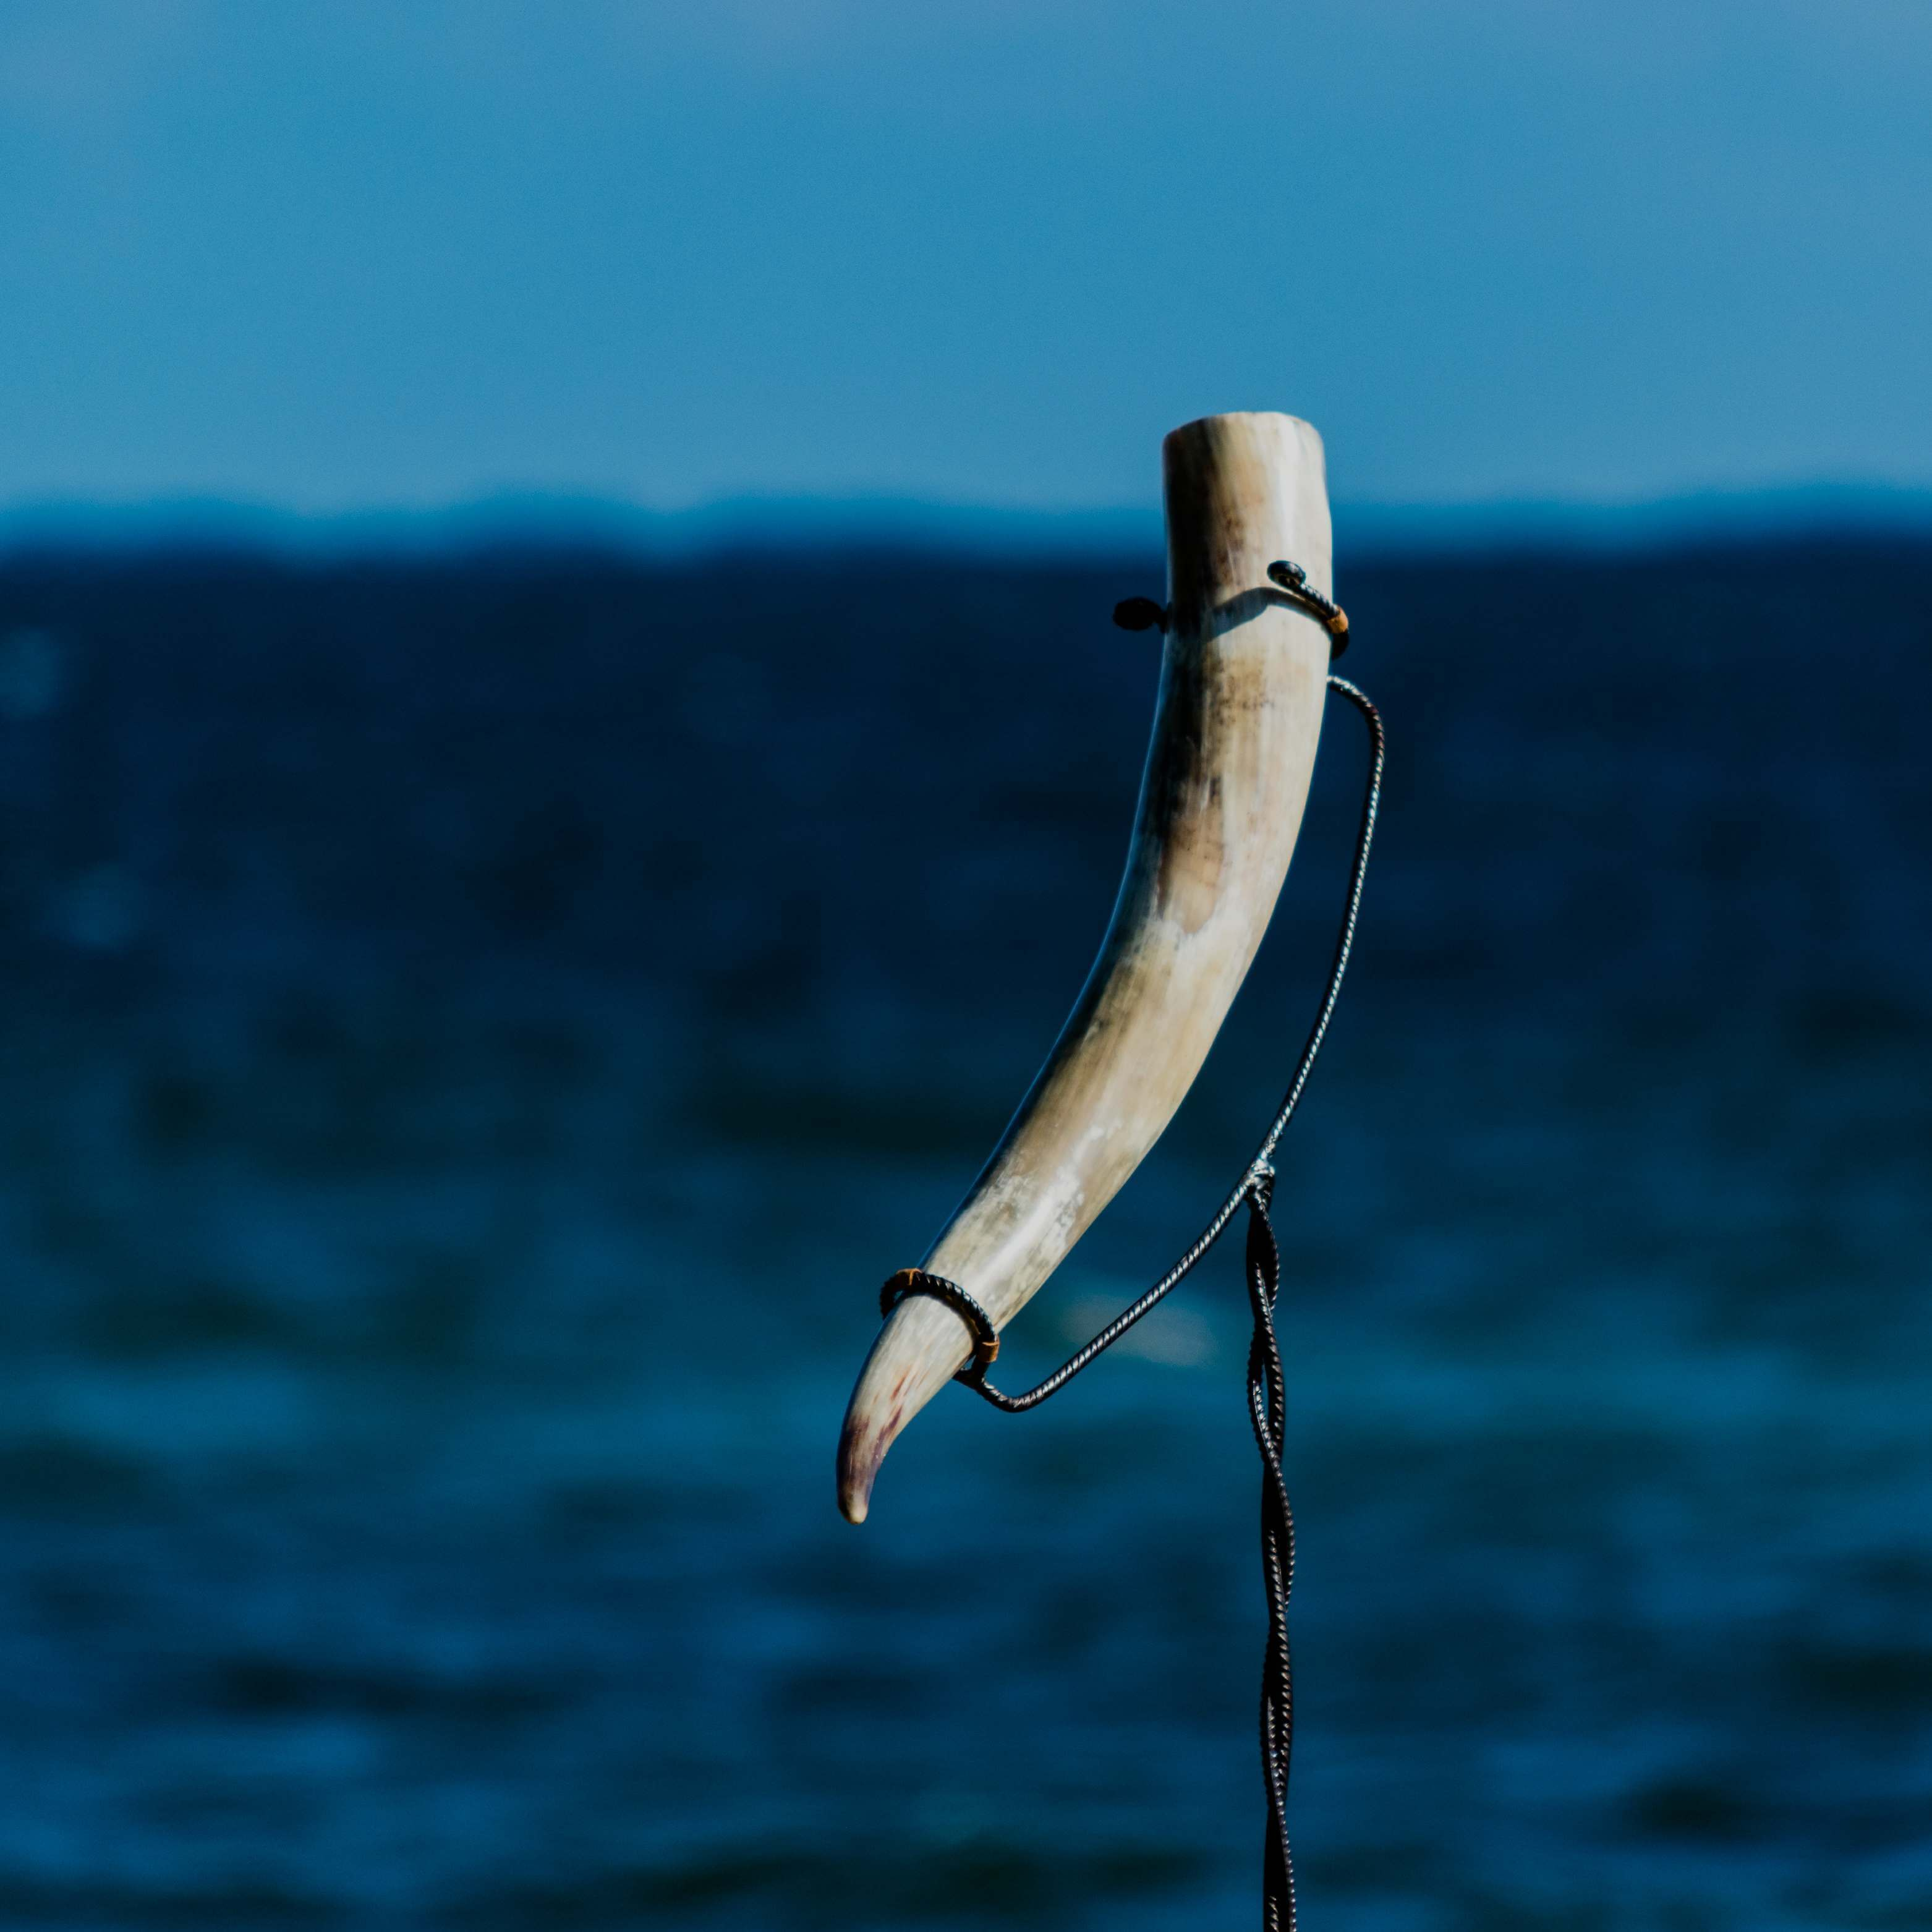 Viking horn on a stand with ocean in the background